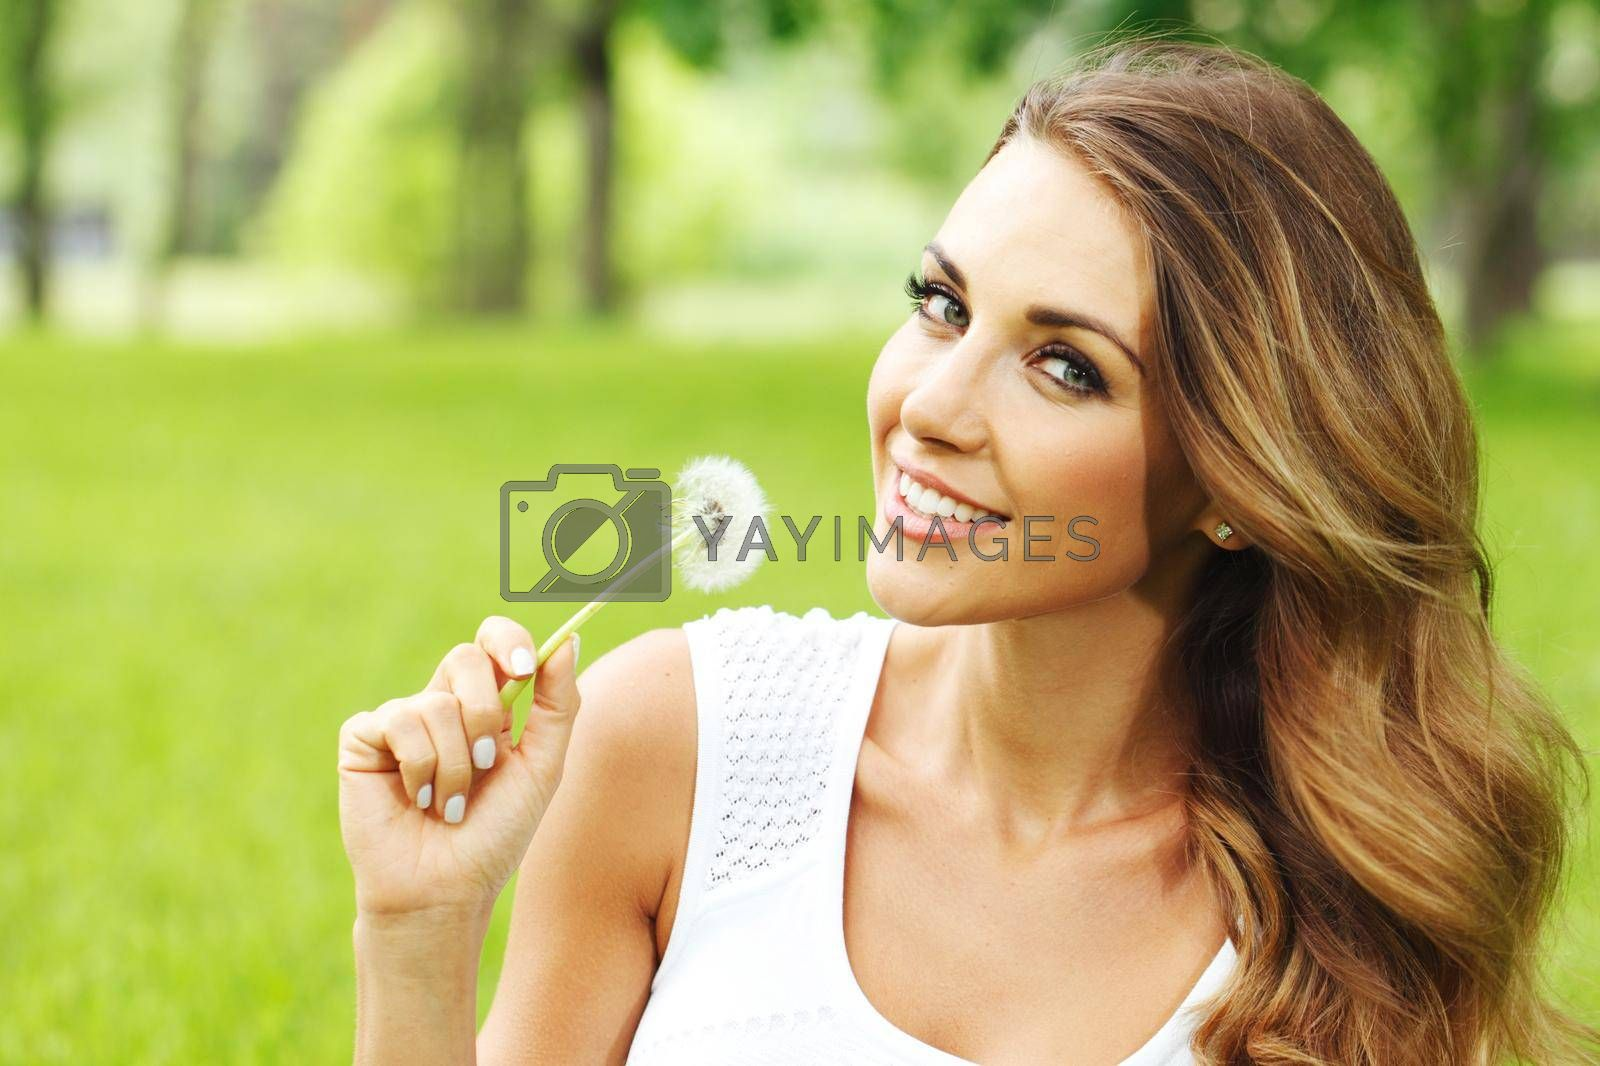 Royalty free image of Woman in park with dandelion by Yellowj